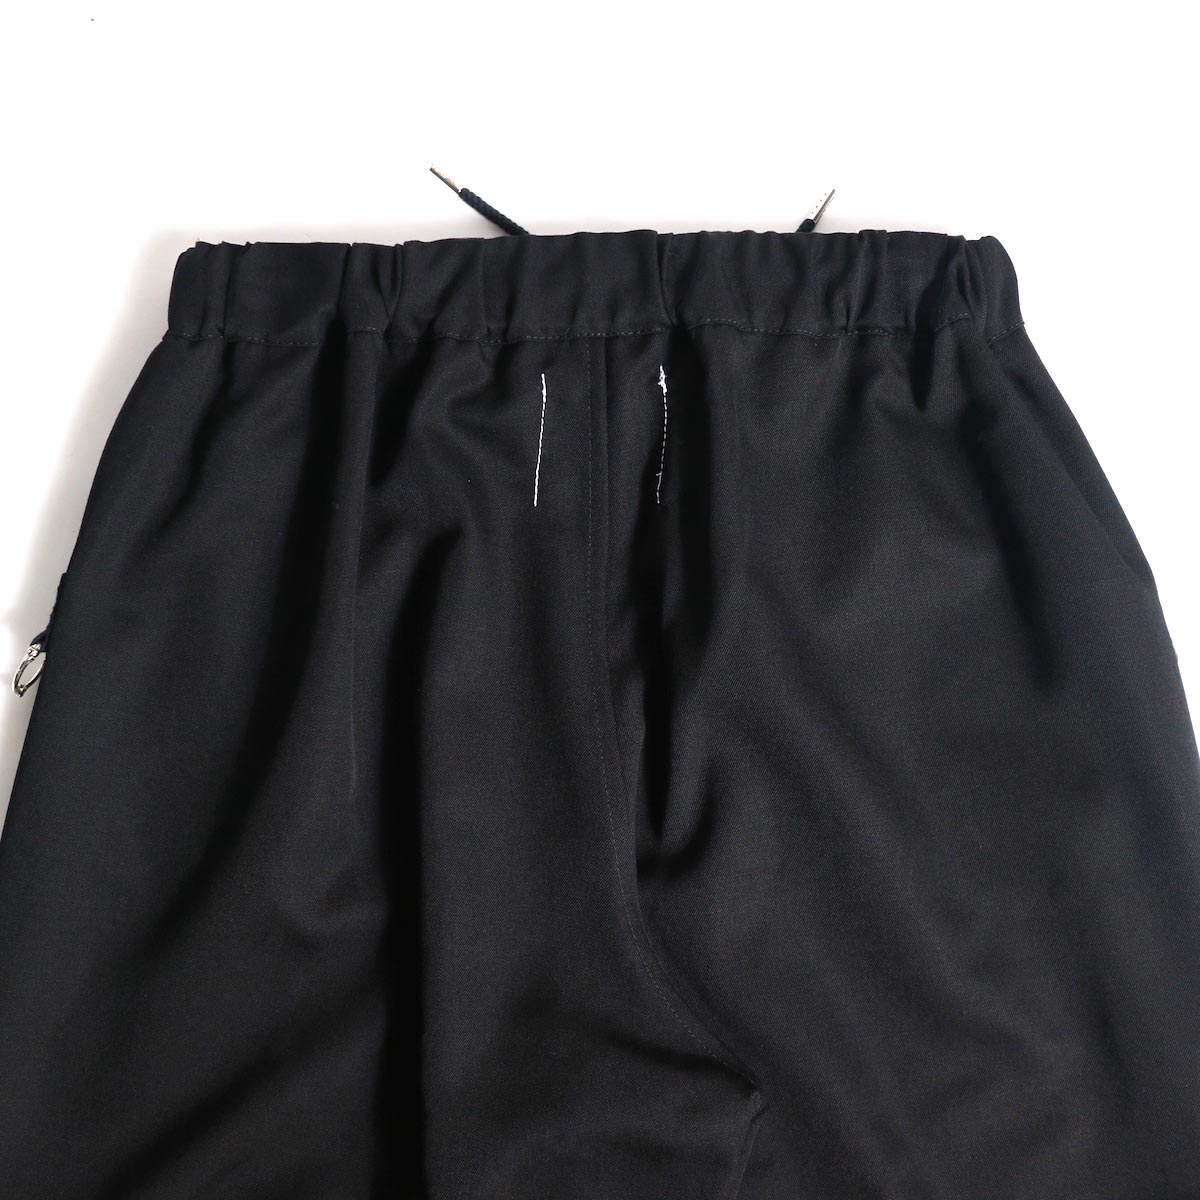 The Soloist / sp.0004dAW20 pajama pant.背面ディテール